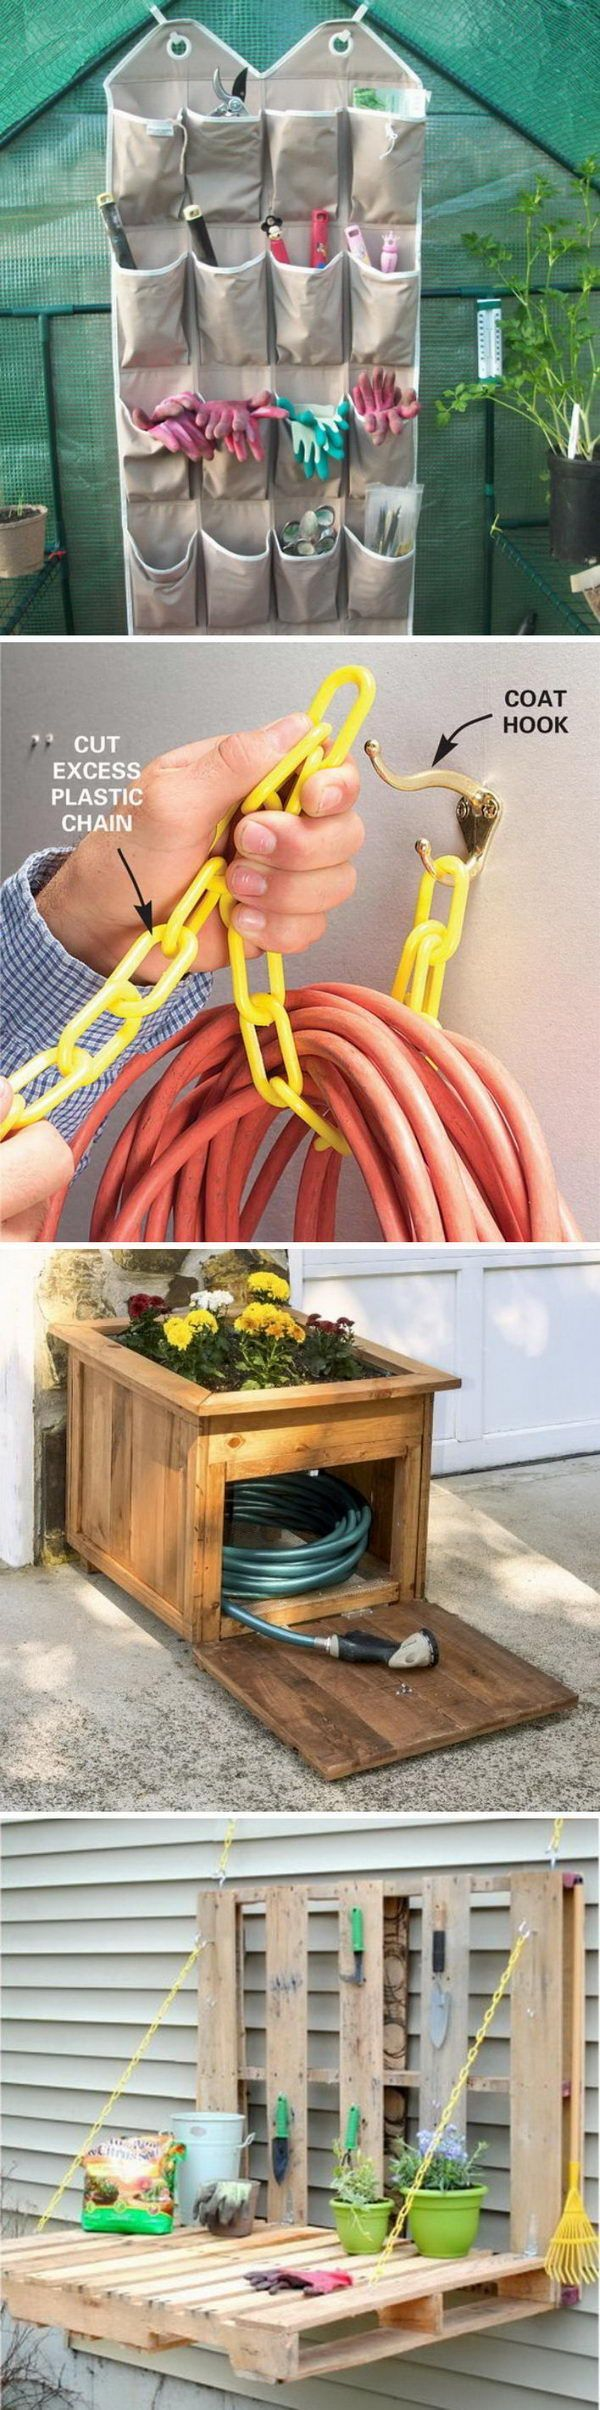 Awesome DIY Storage Ideas for Your Garden